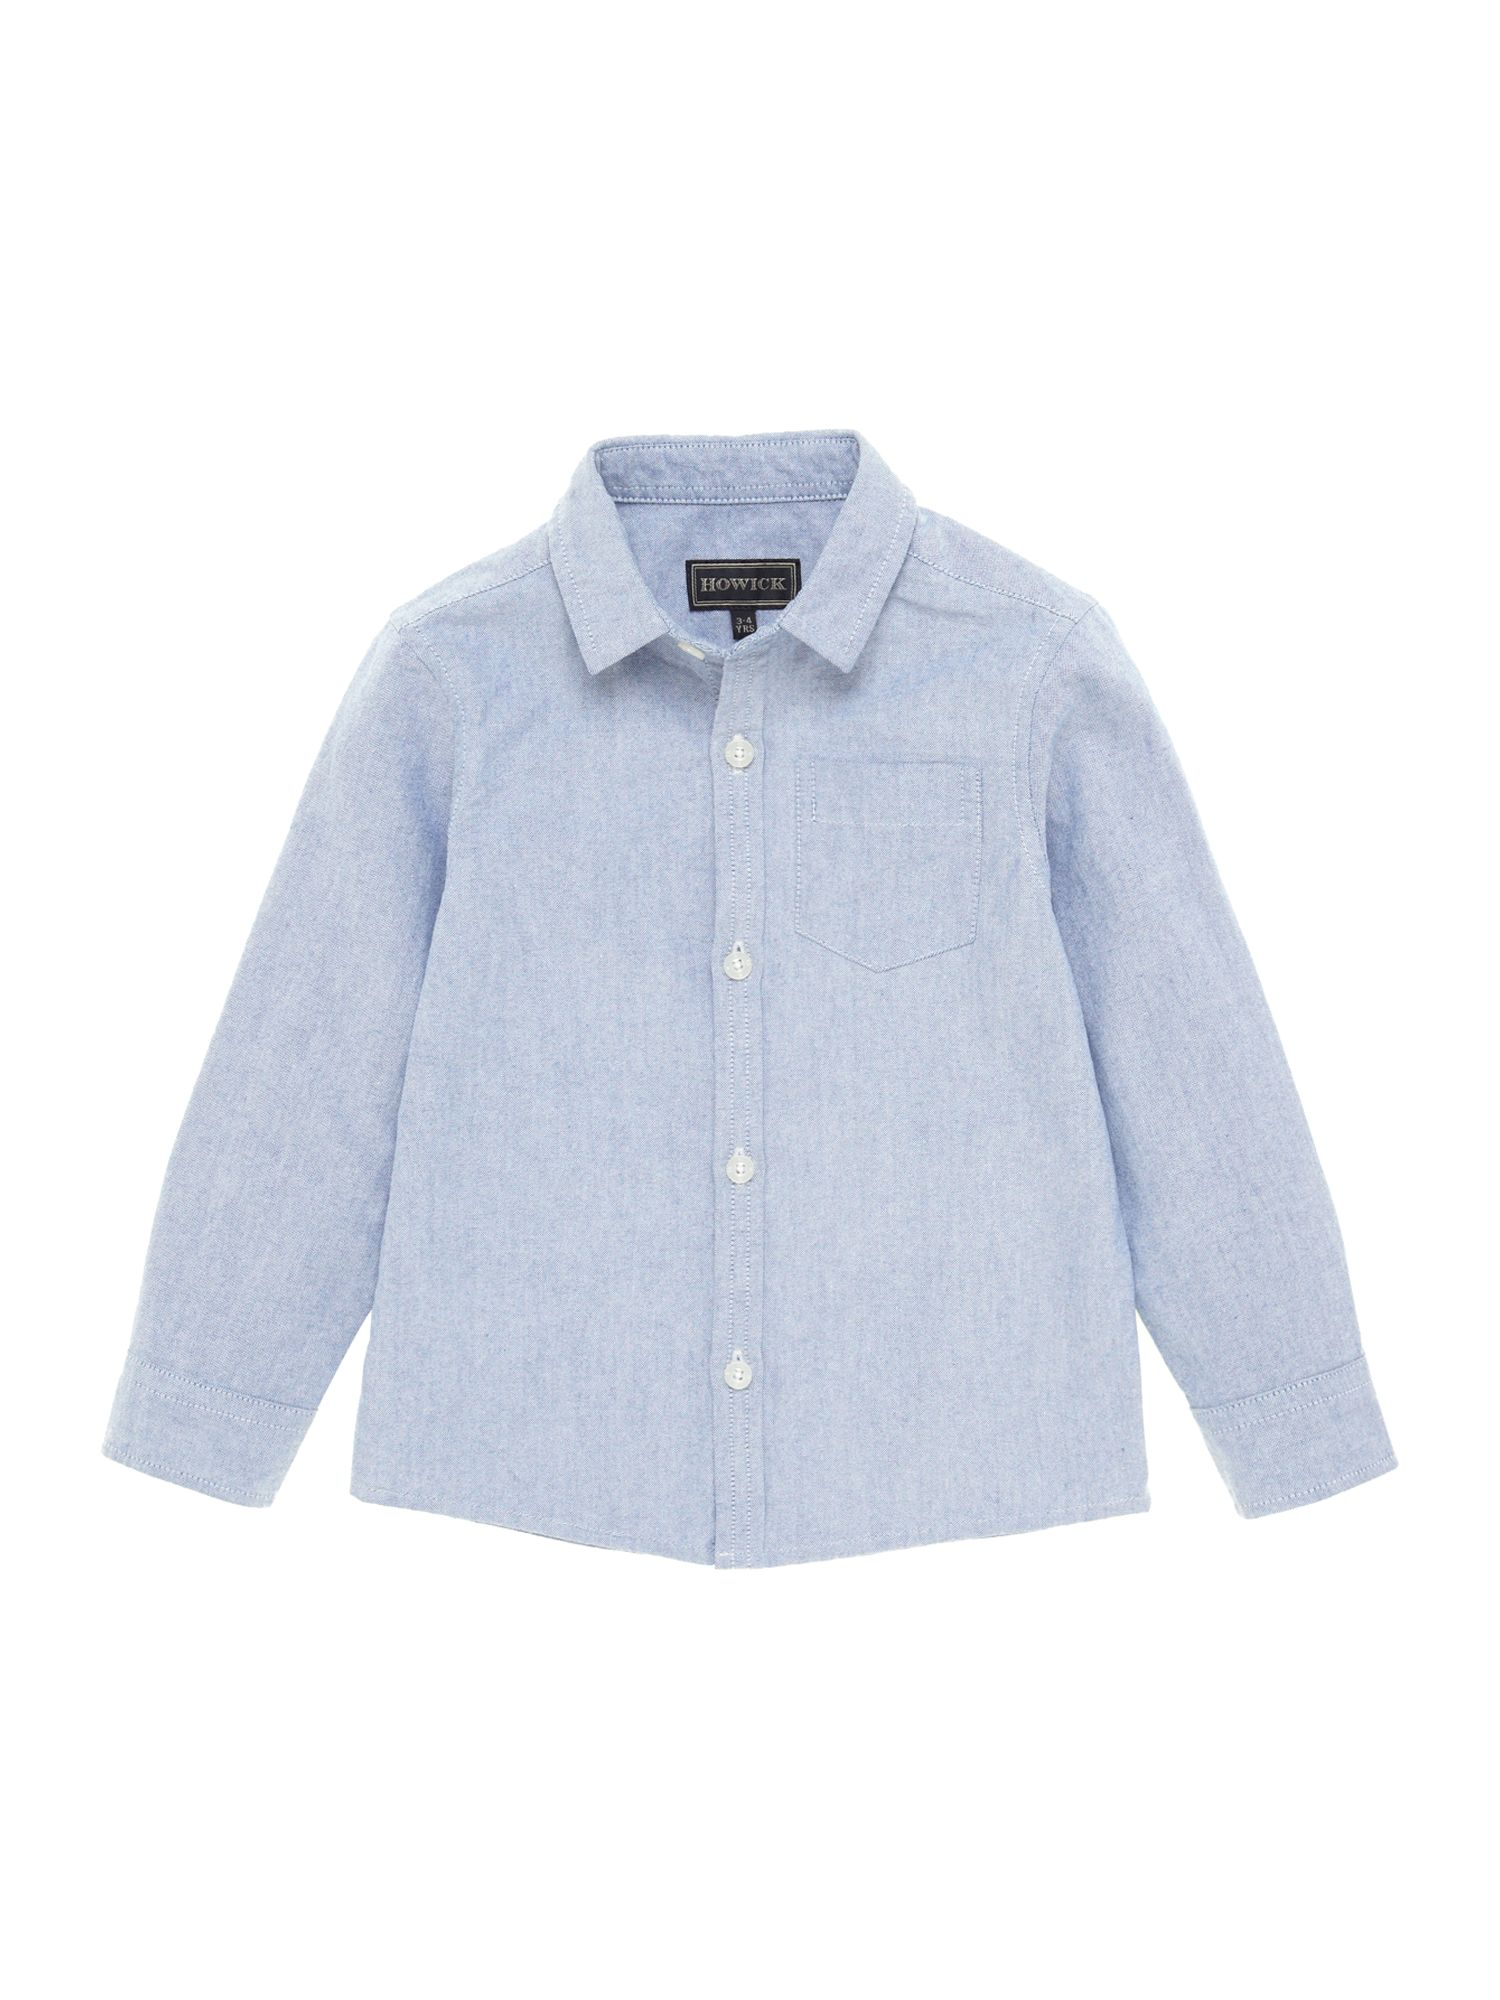 Boys oxford shirt